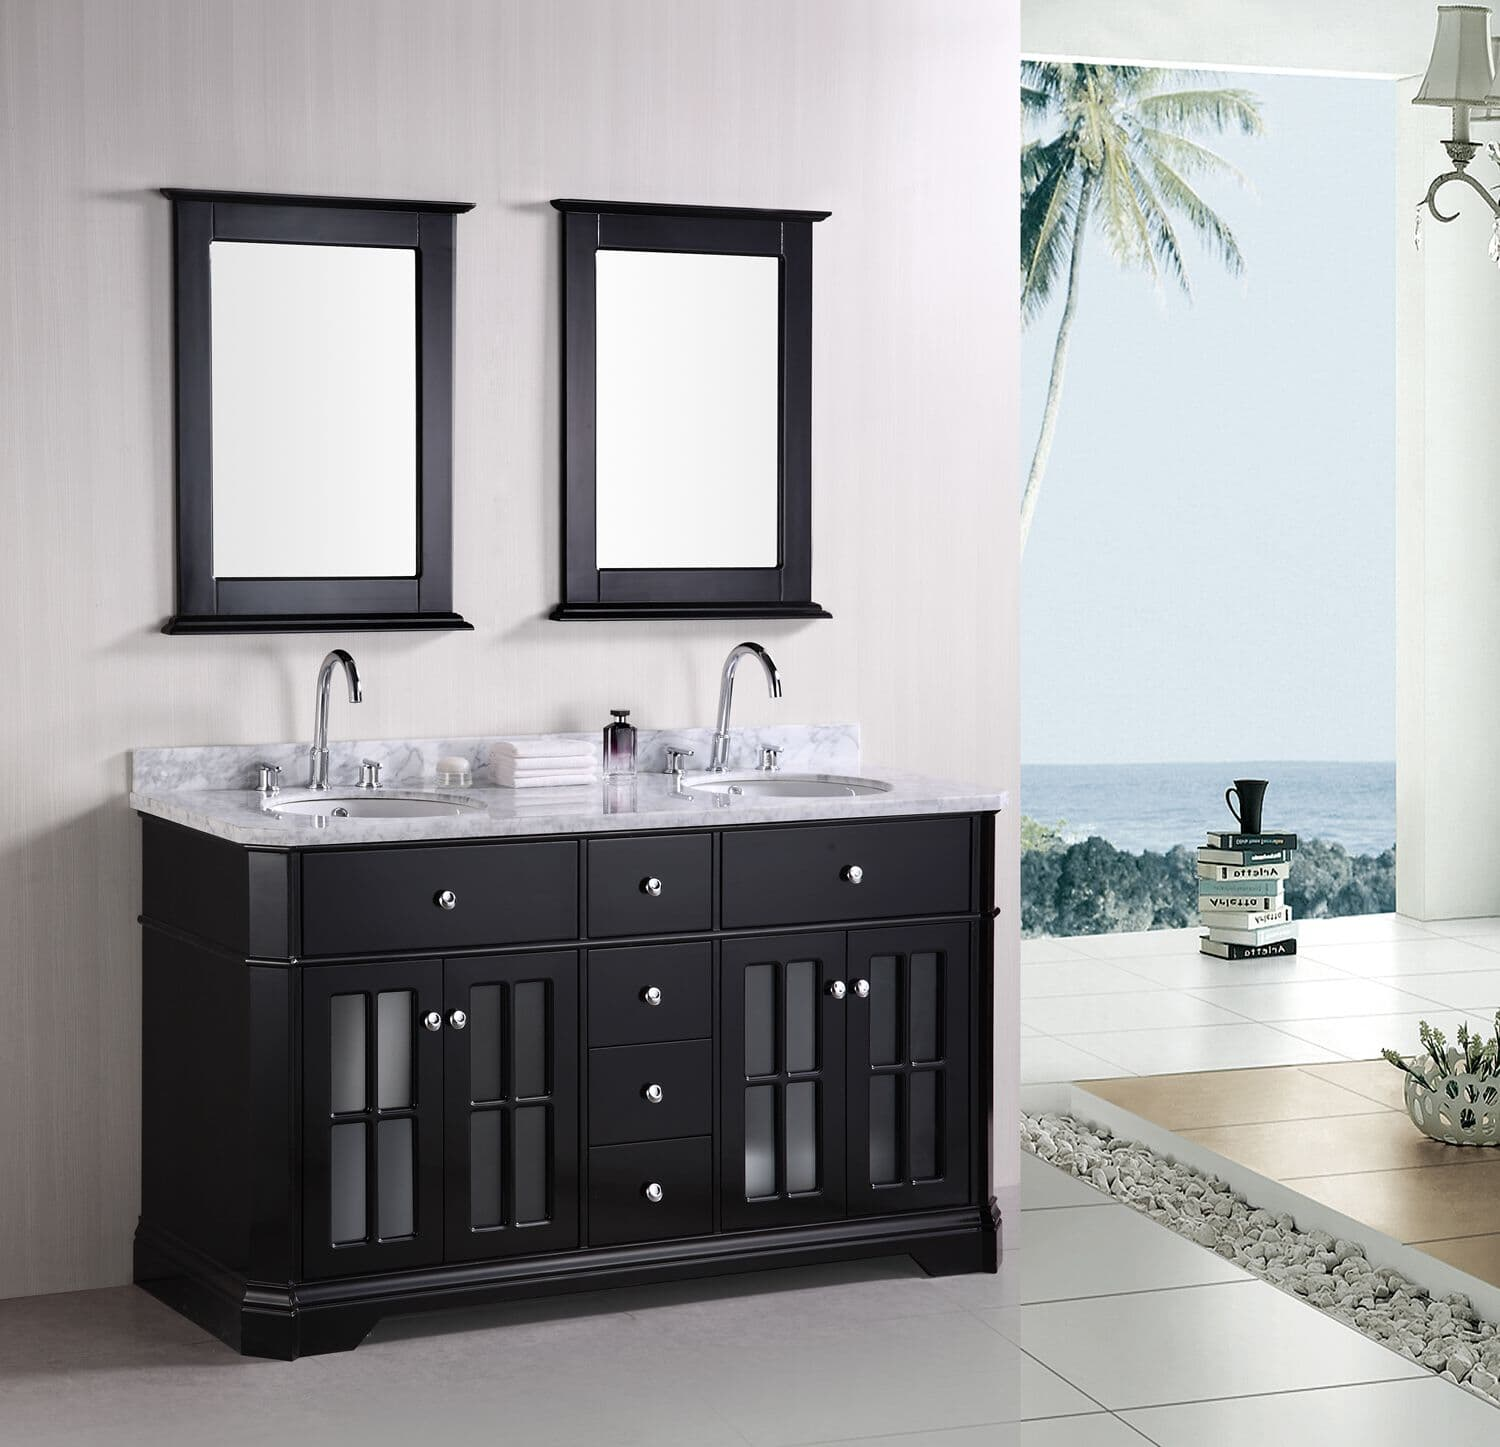 Bathroom and Vanities Gallery